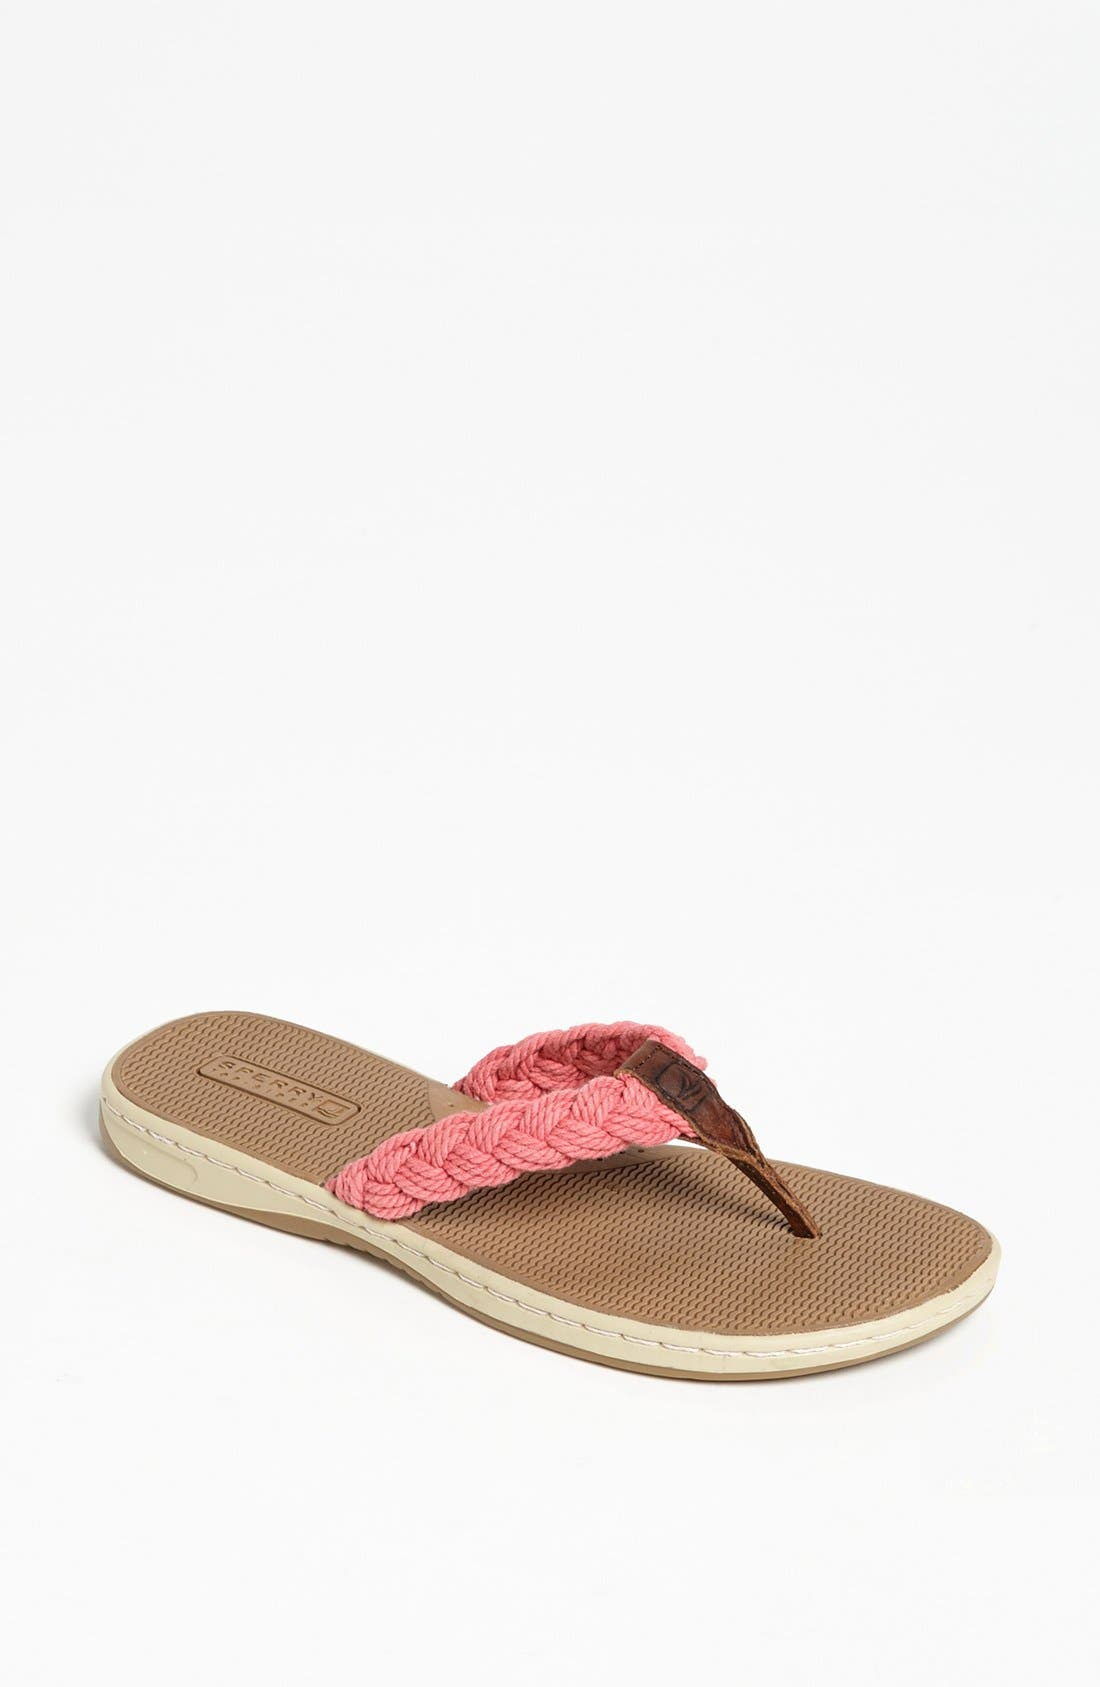 Alternate Image 1 Selected - SPERRY TOP-SIDER TUCKERFISH FLIP FLOP